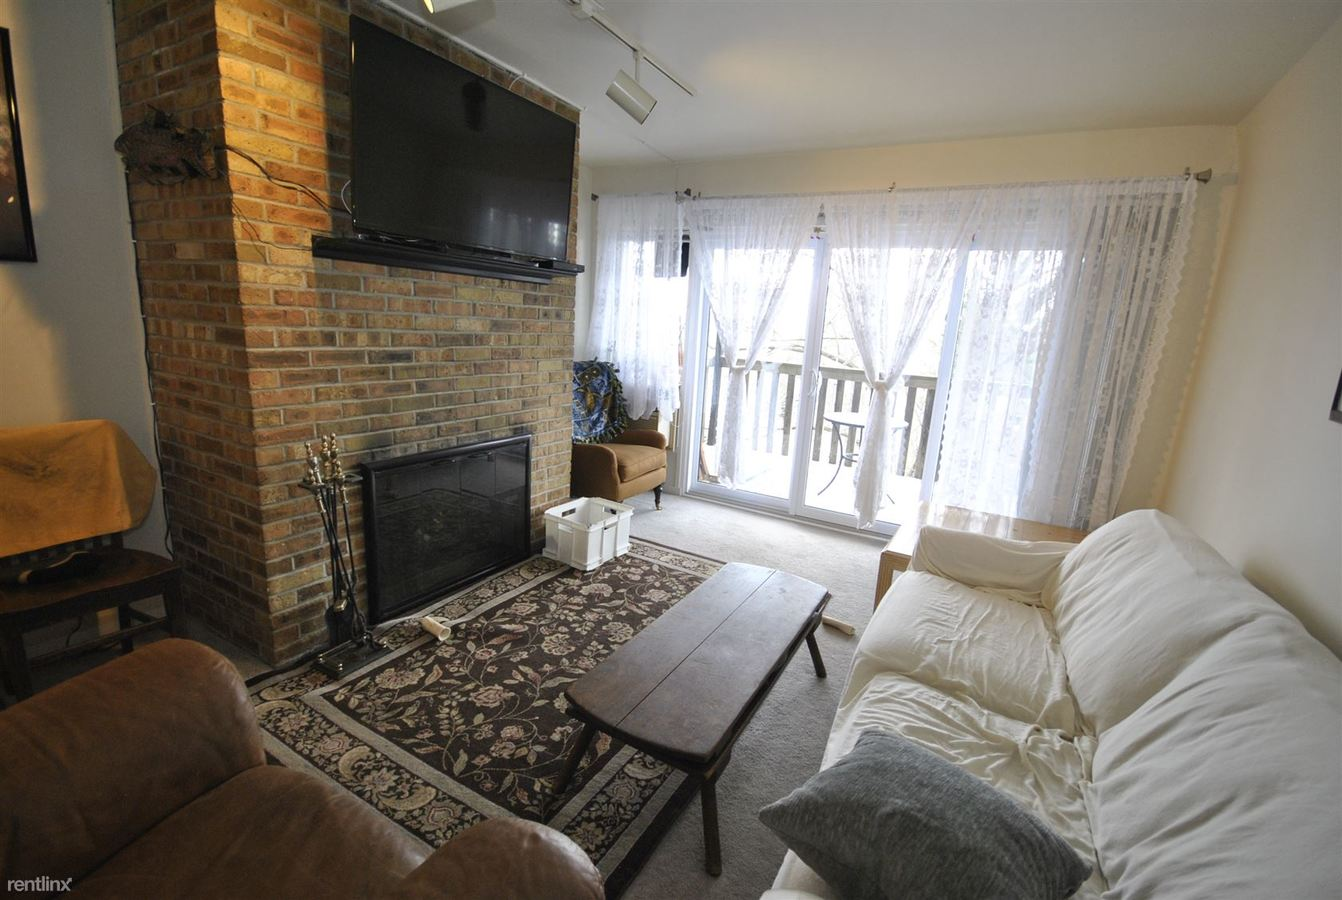 2 Bedrooms 1 Bathroom Apartment for rent at 723 W Madison St in Ann Arbor, MI